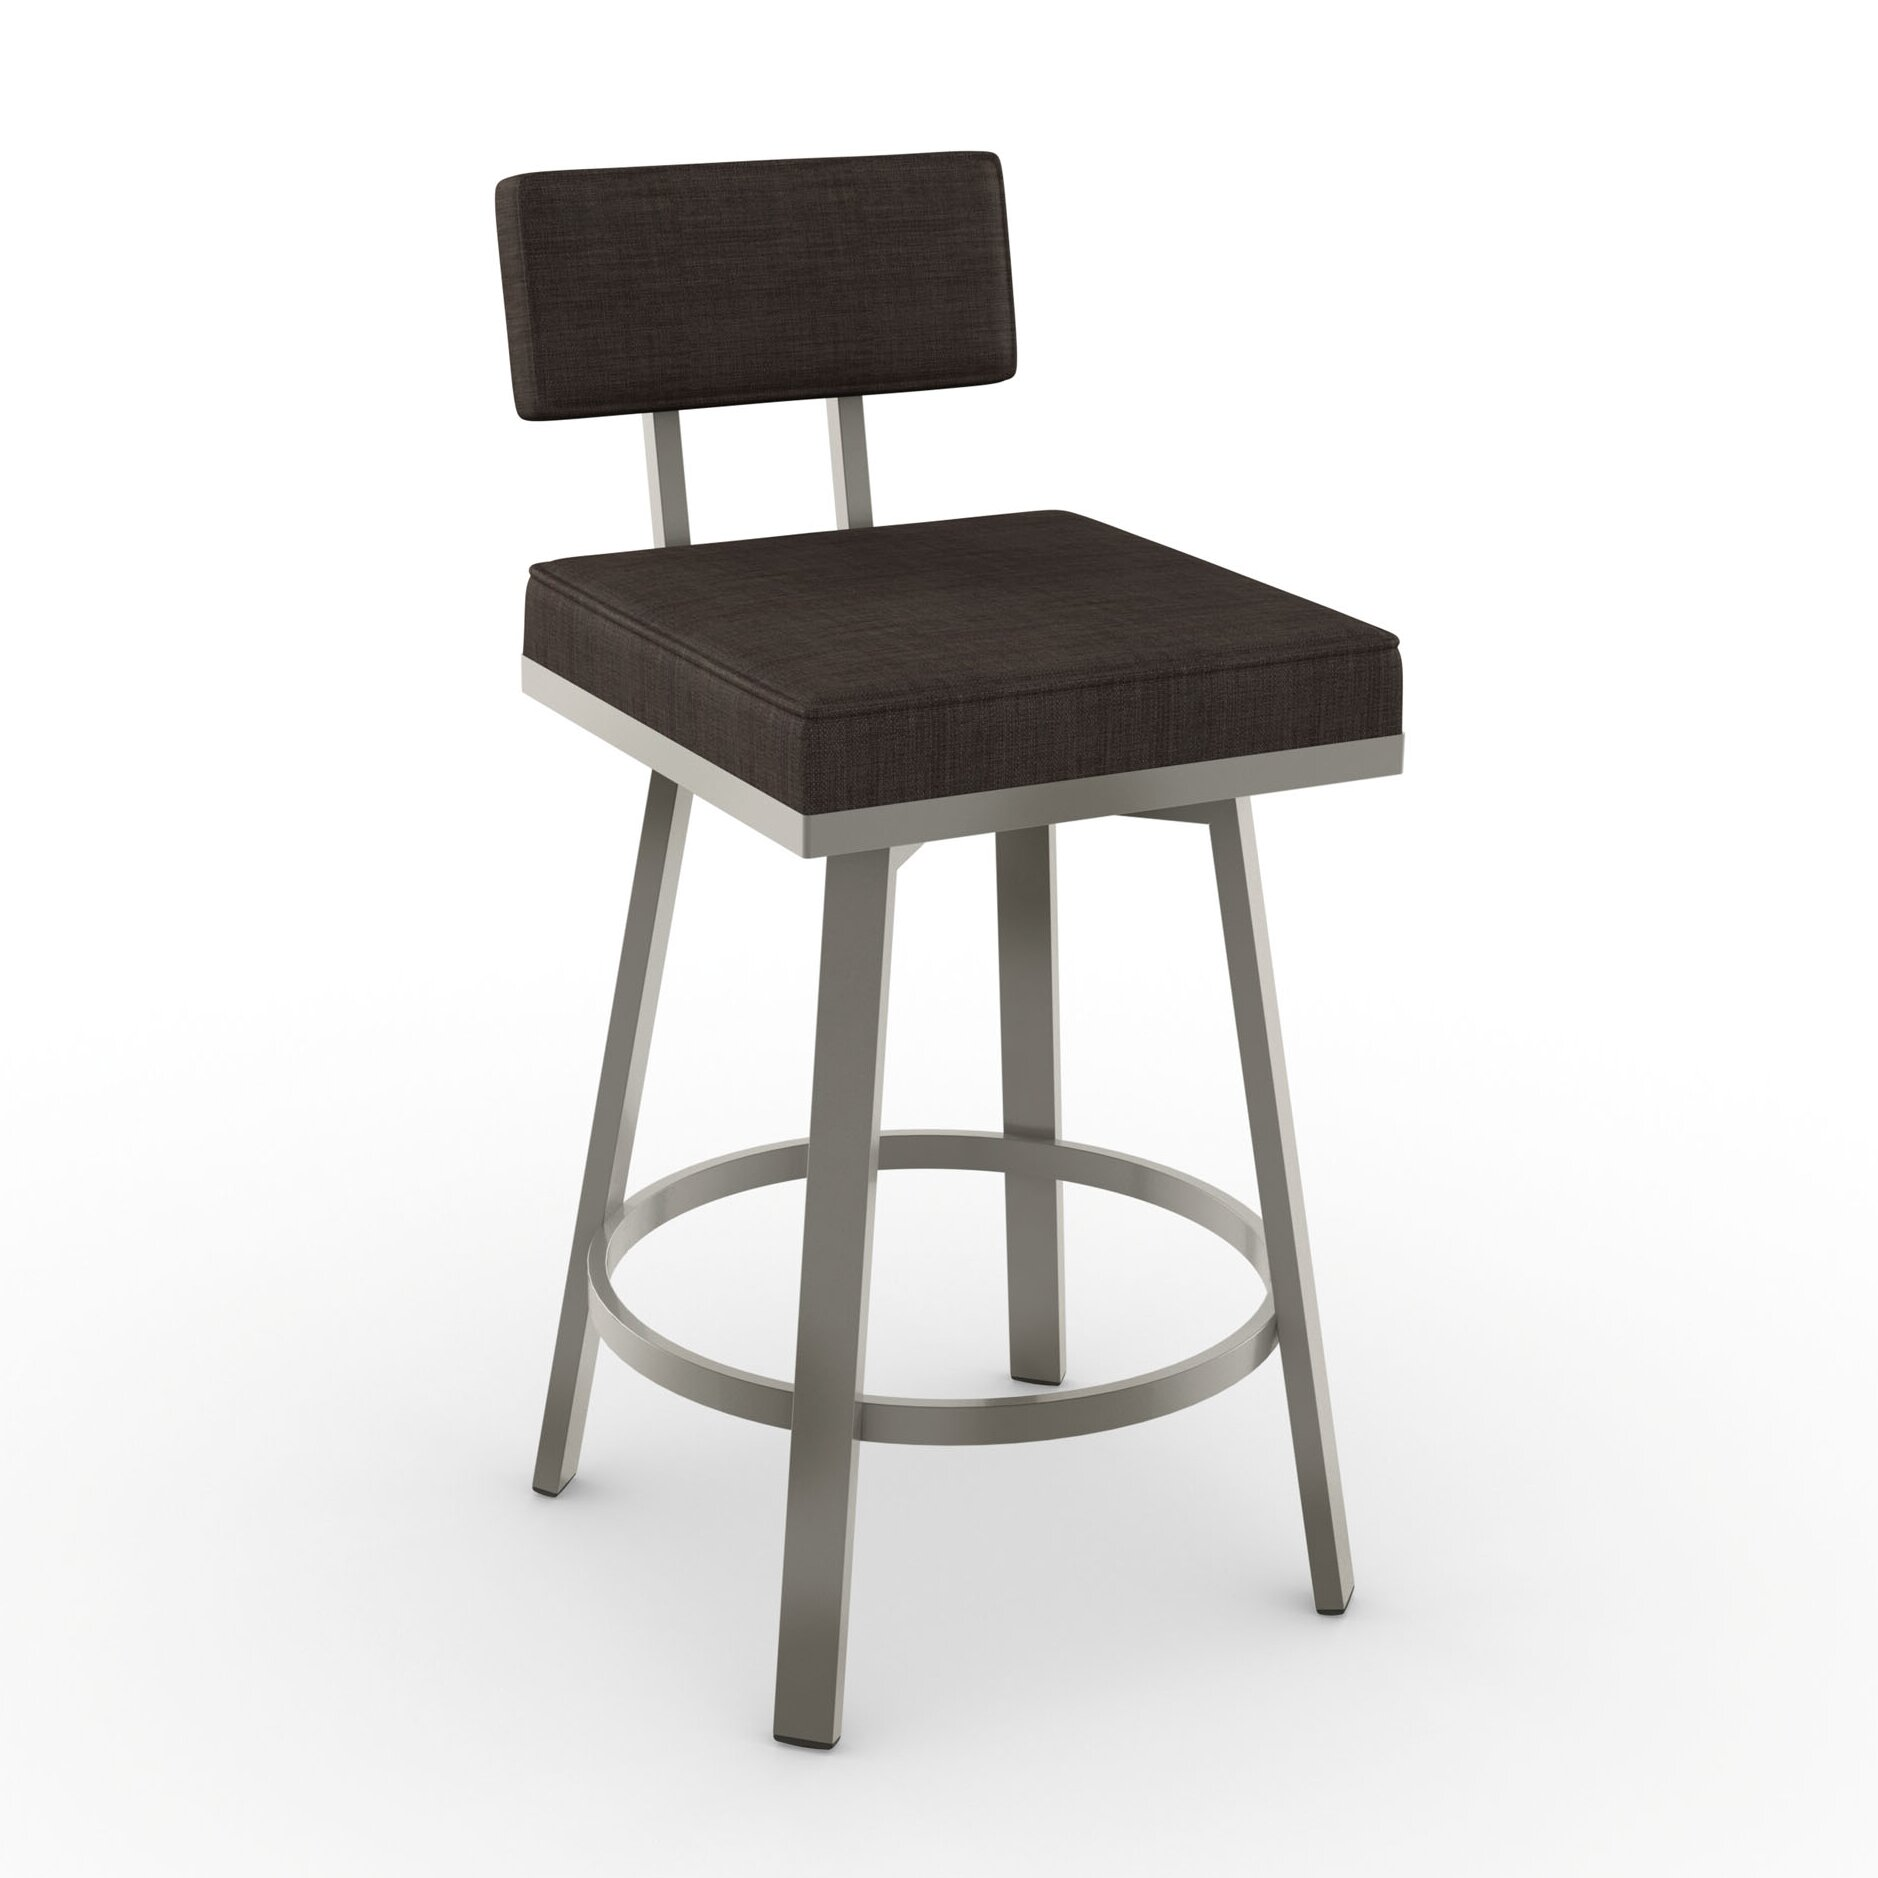 Amisco New York Style 30quot Swivel Bar Stool amp Reviews Wayfair : Amisco New York Style Staten 30 Swivel Bar Stool from www.wayfair.com size 1878 x 1878 jpeg 187kB